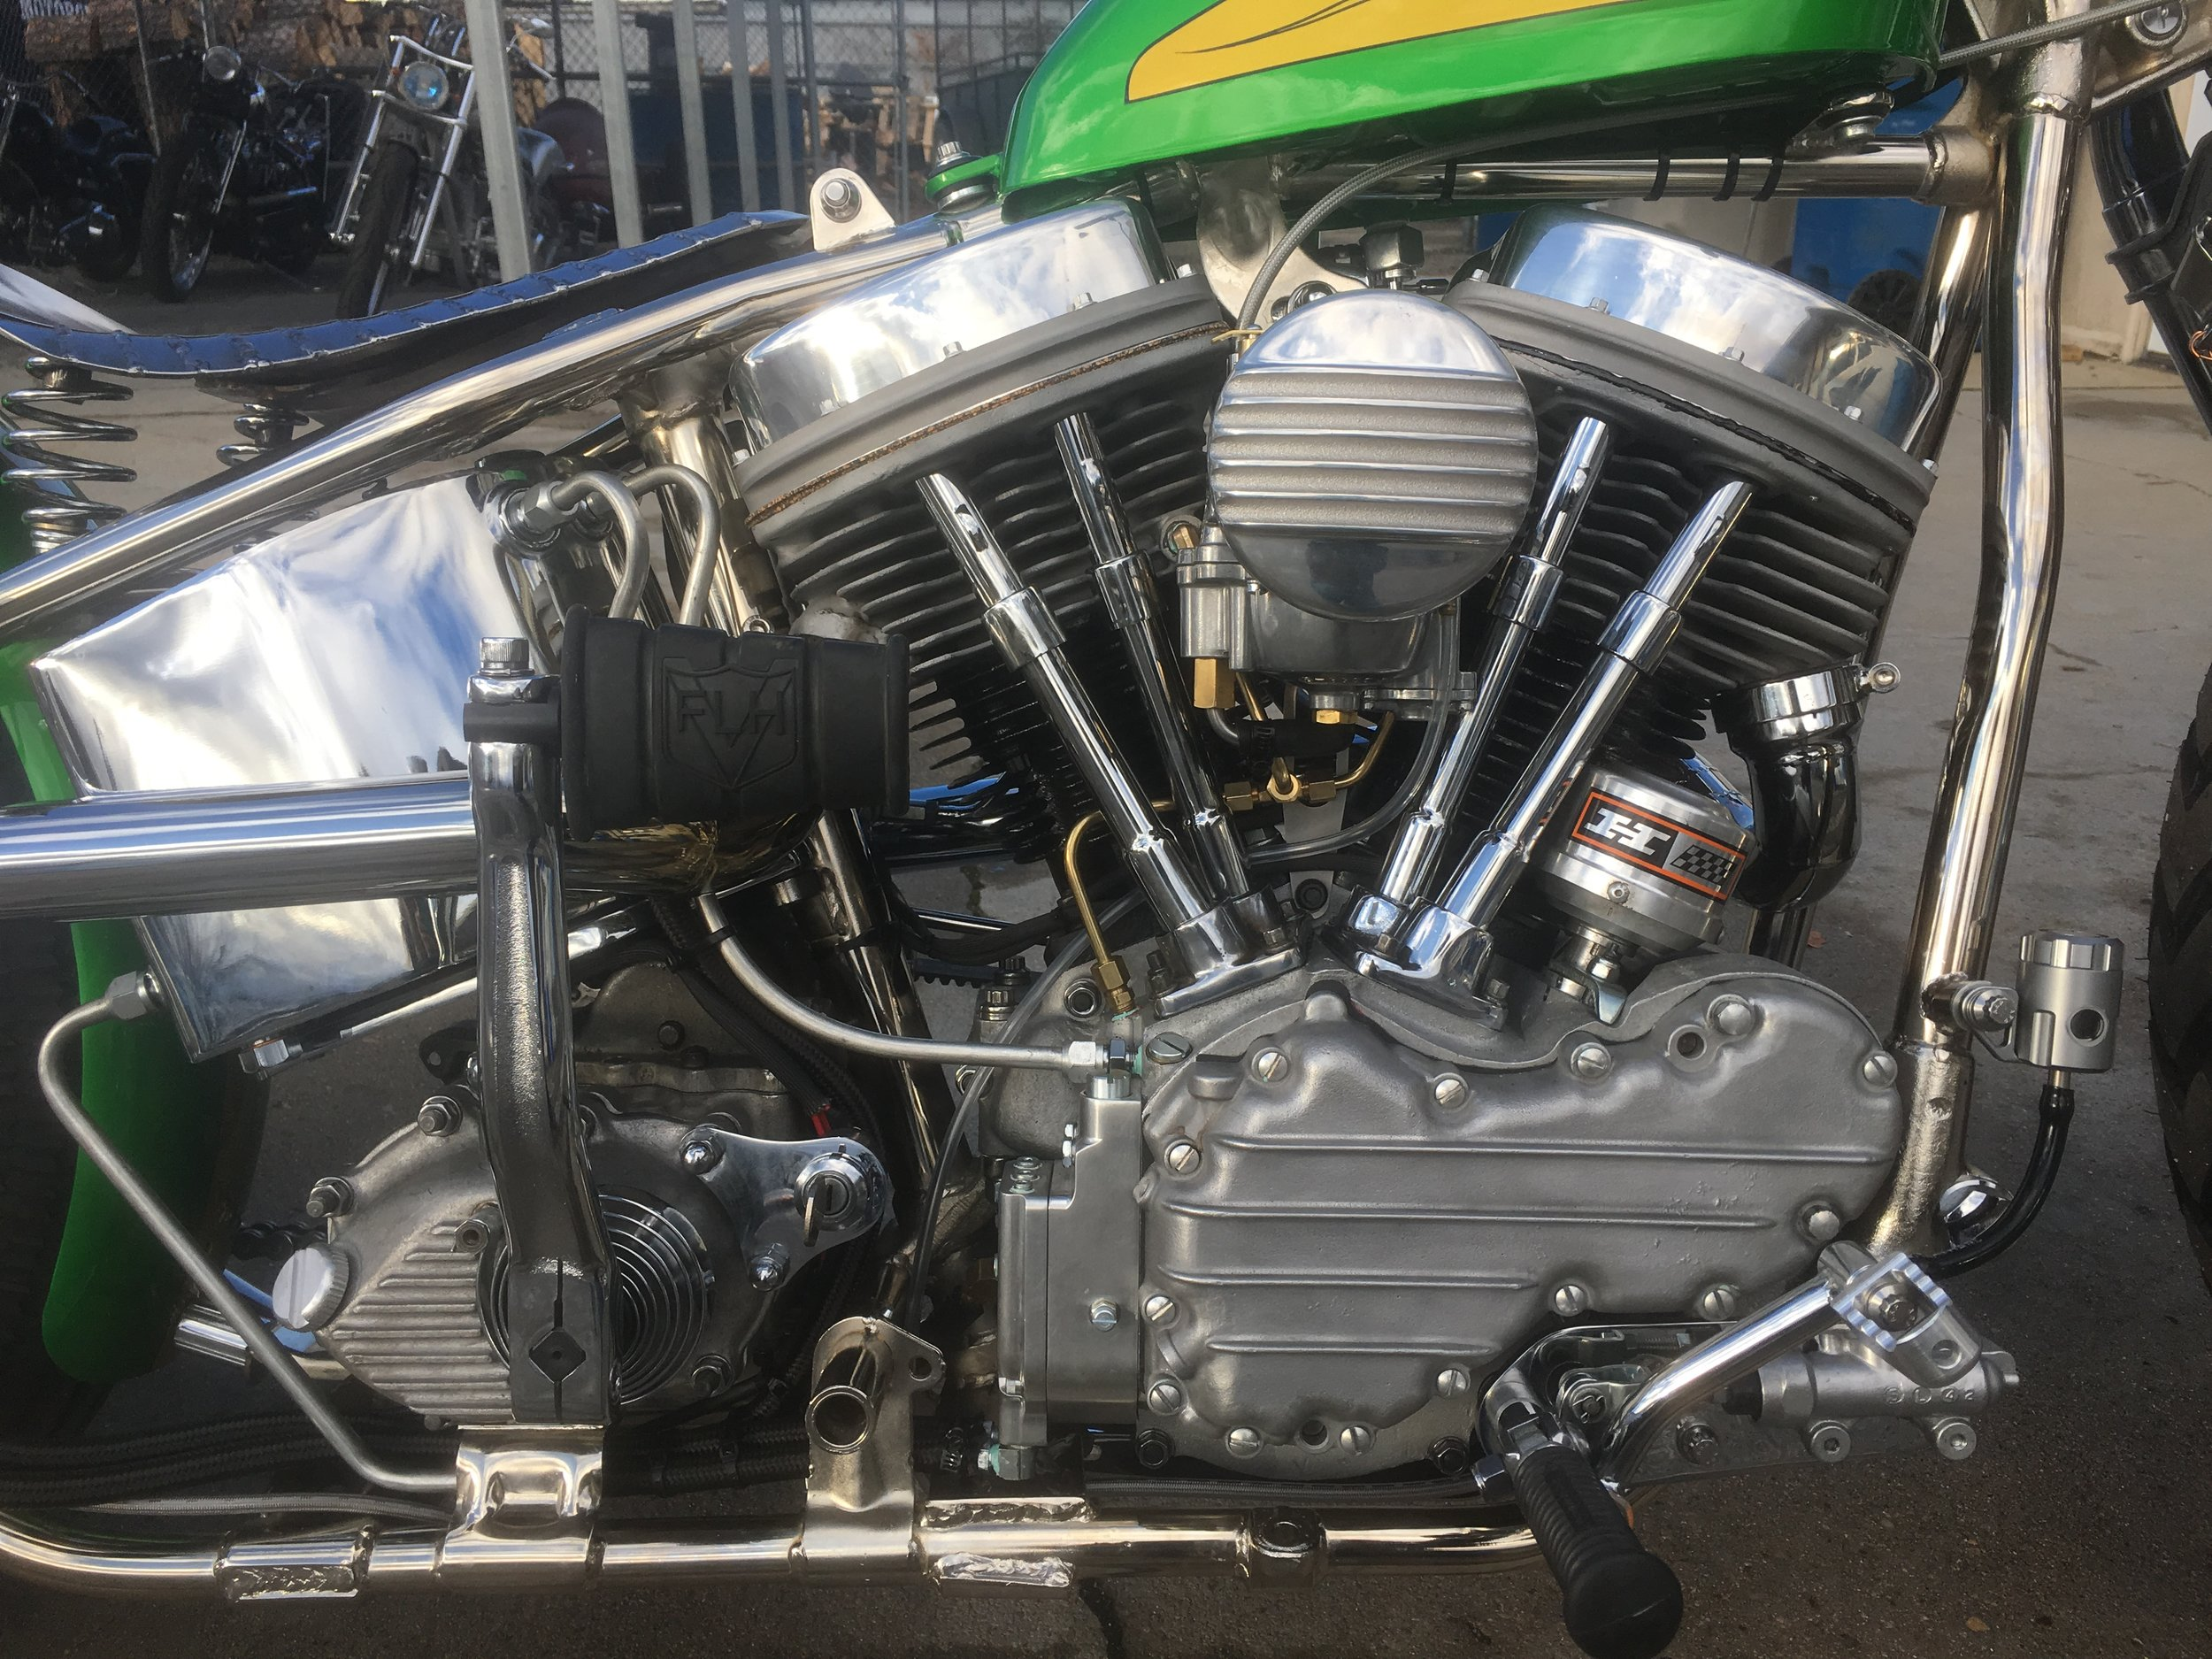 1949 panhead motor (rebuilt) and hand built forward controls by Todd Apple.